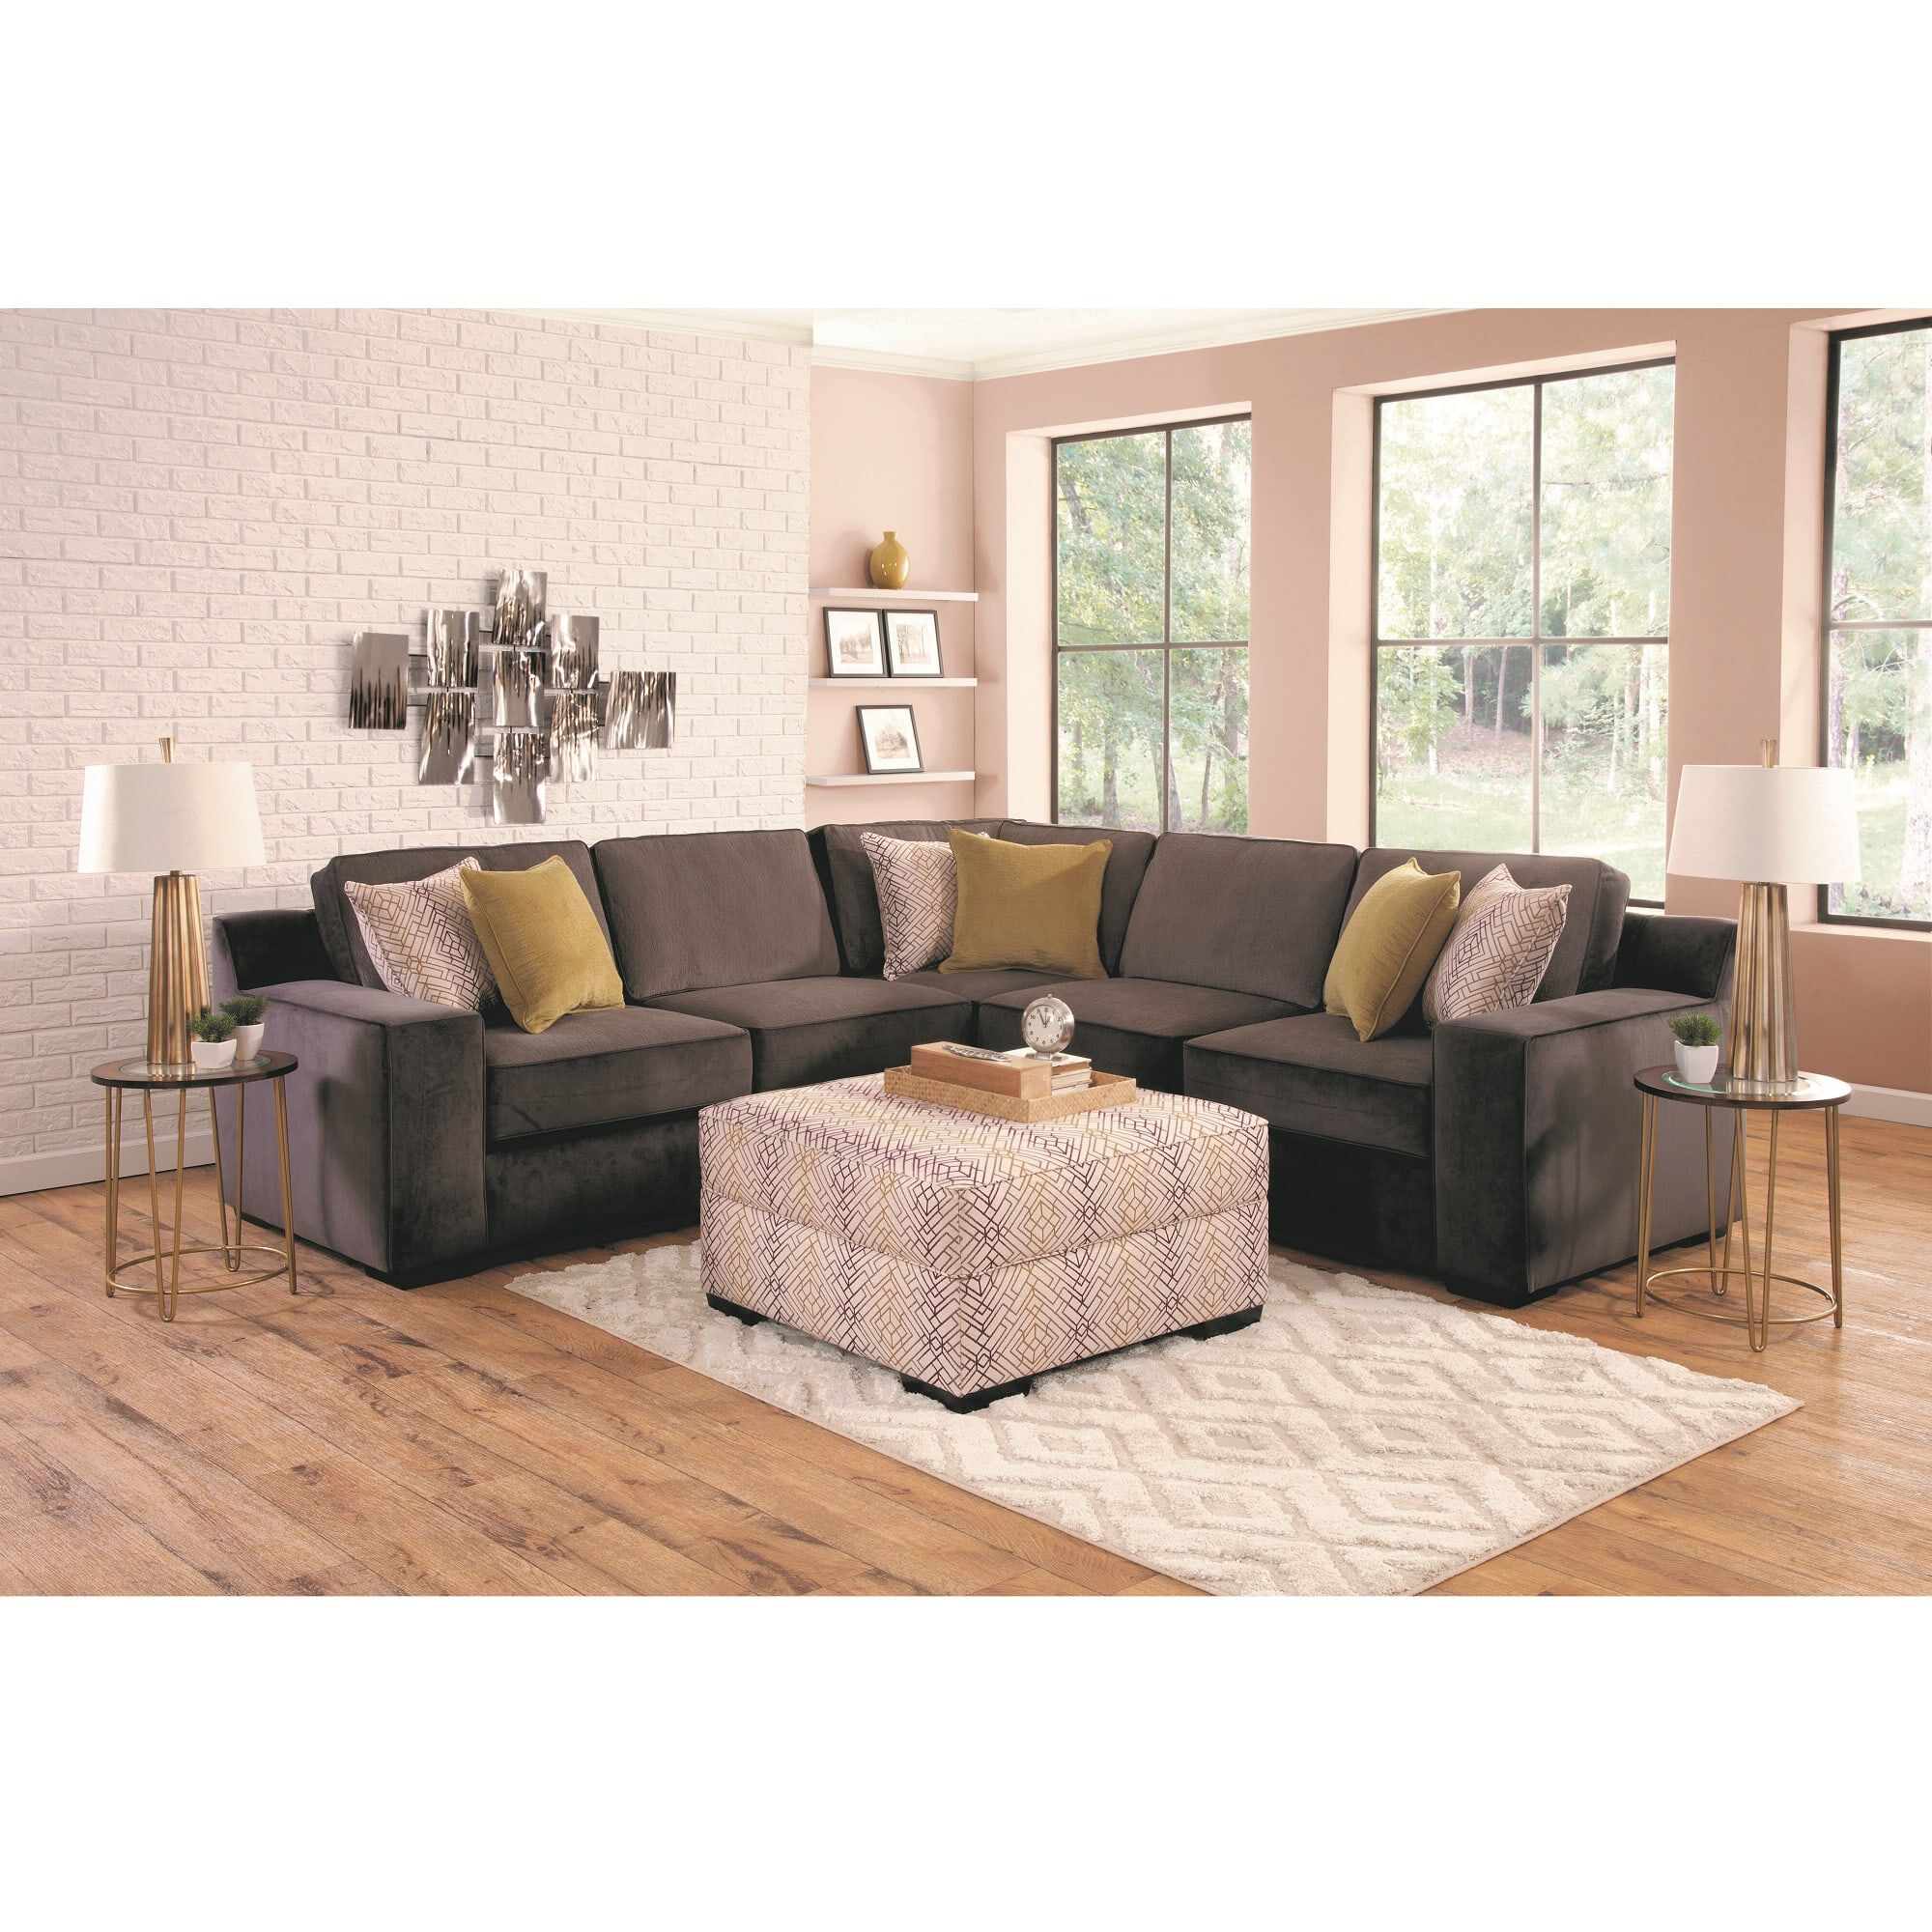 Delicieux 4 Piece Sonja Living Room Collection